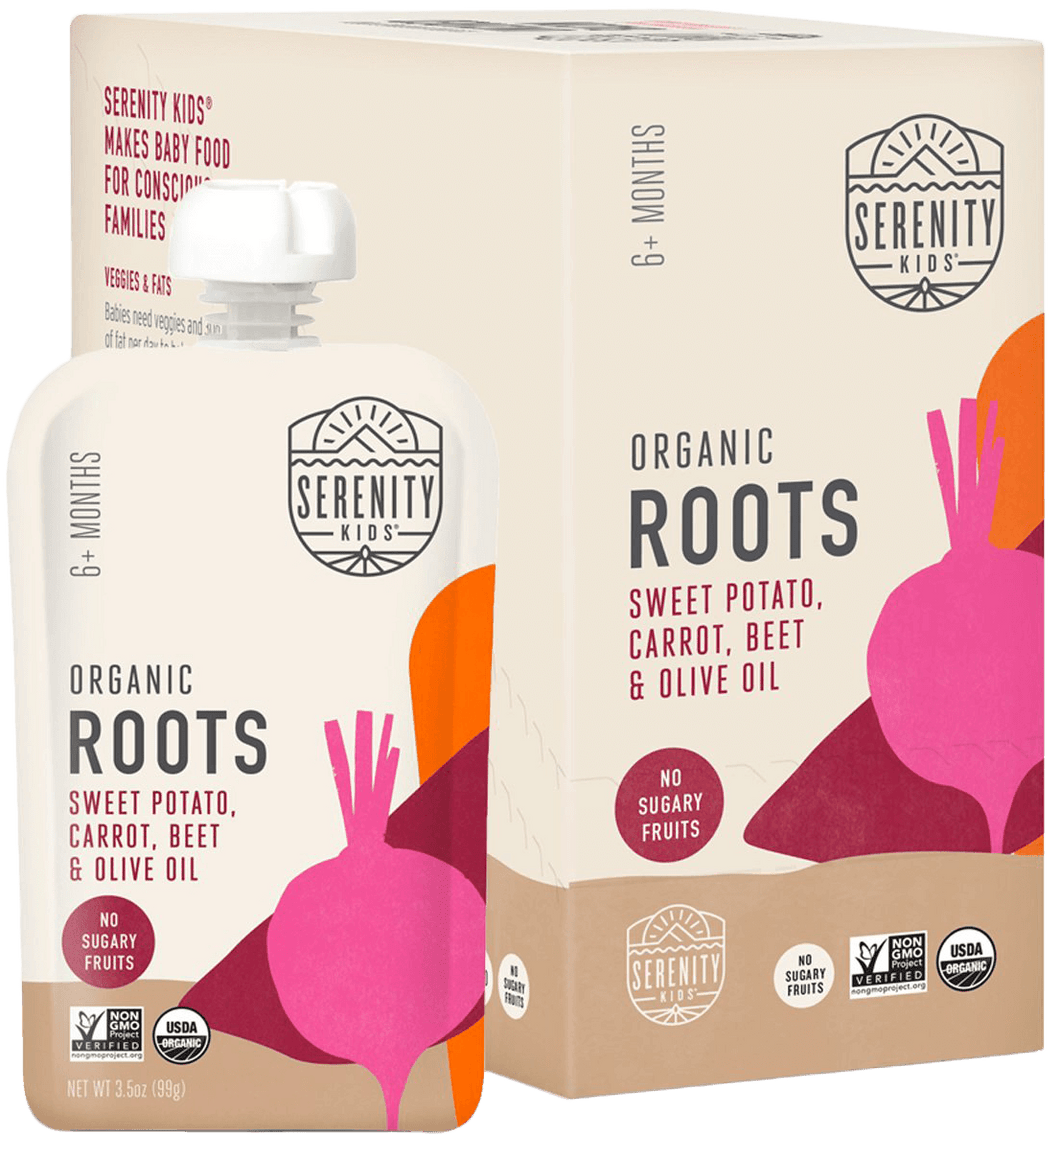 Organic Puree: 6 Pack of Roots - Sweet Potato, Carrot, Beet (6M) (3.5 oz)